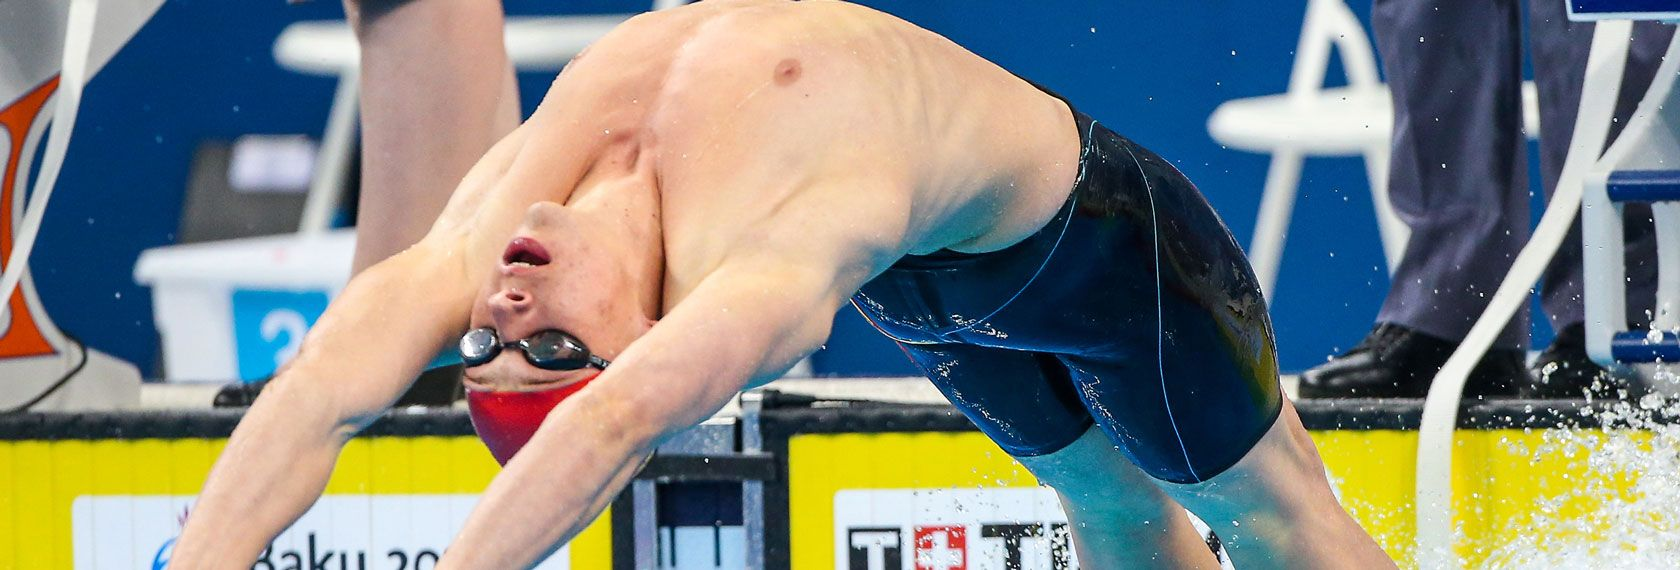 joe_hulme_backstroke_start_european_games_2015.jpg